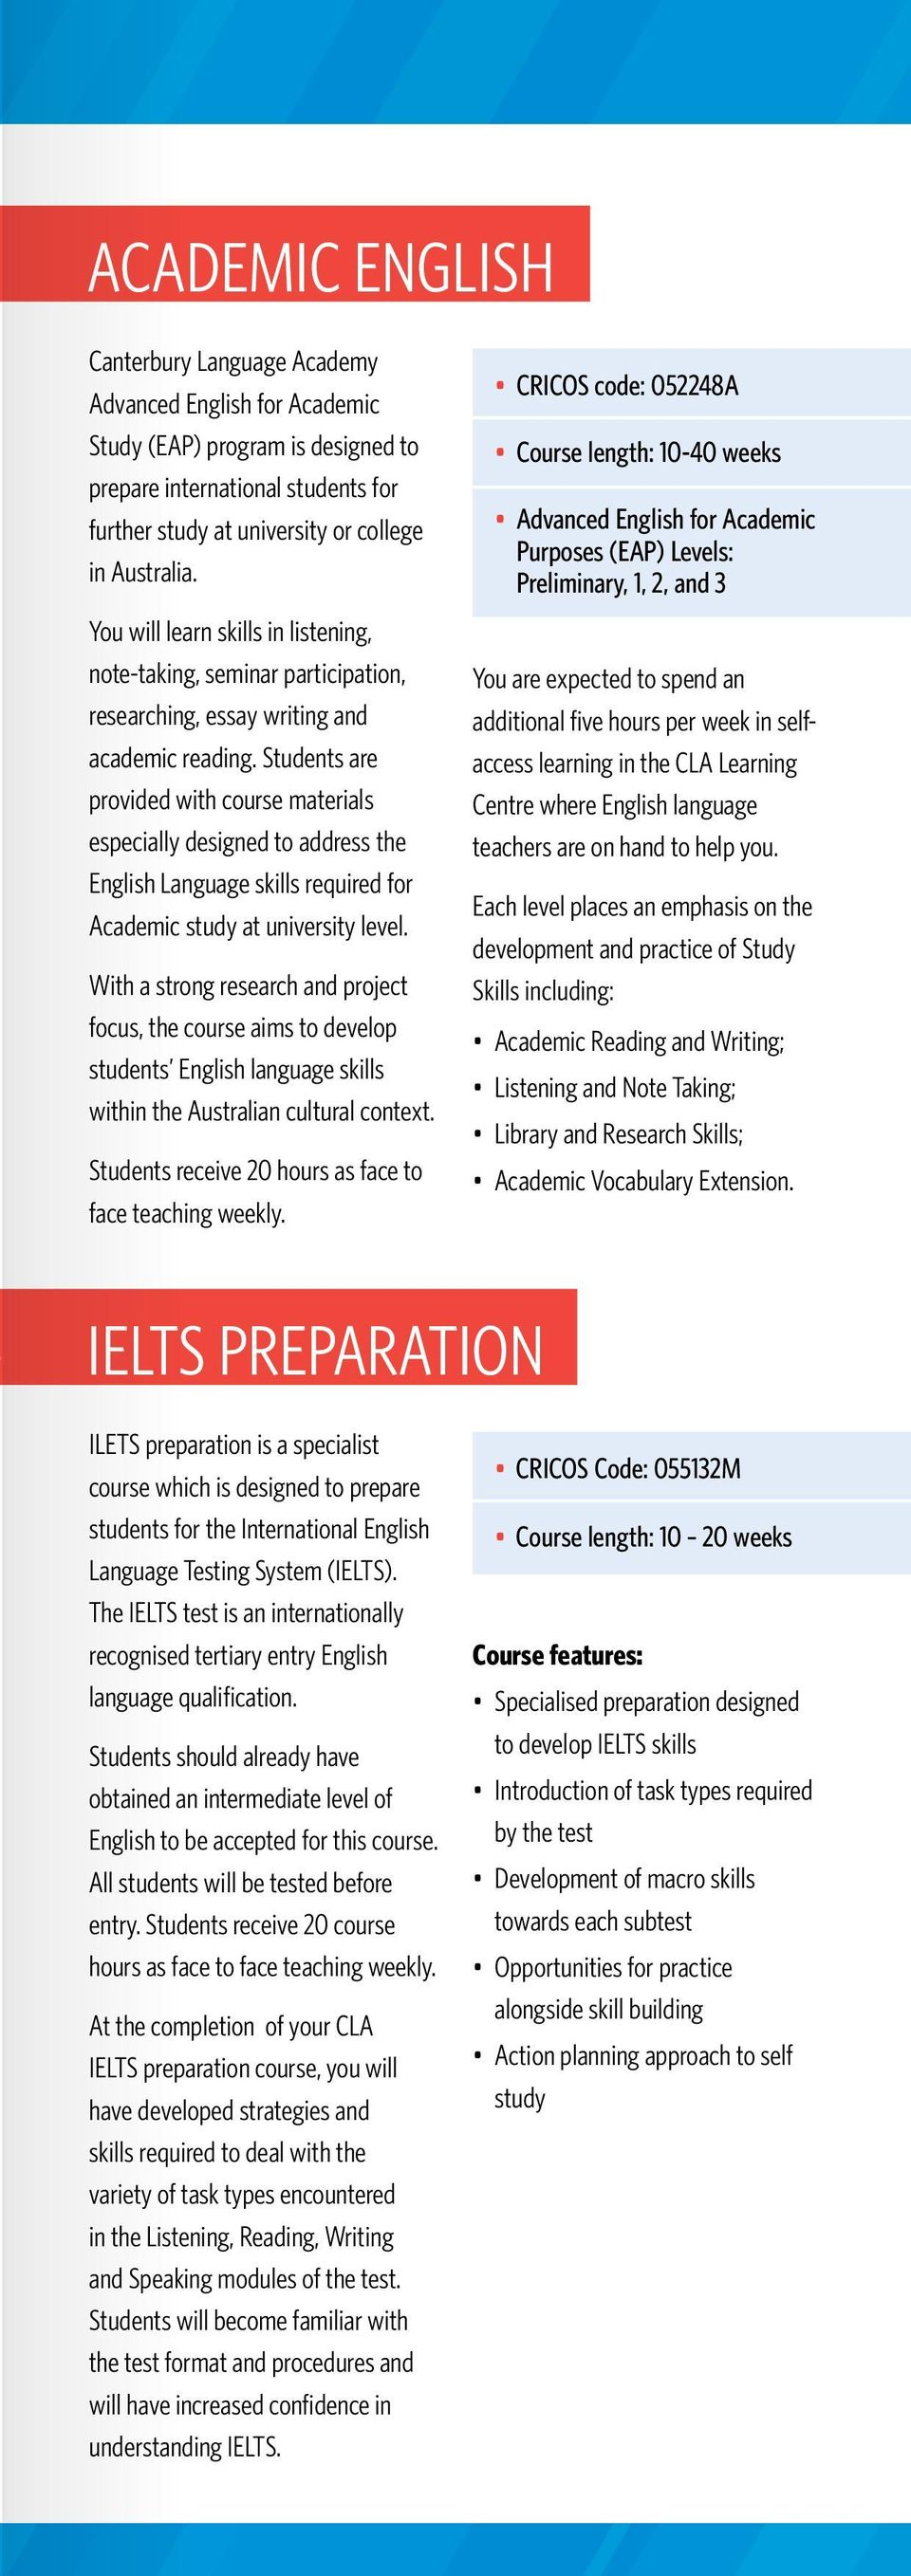 Students are provided with course materials especially designed to address the English Language skills required for Academic study at university level.